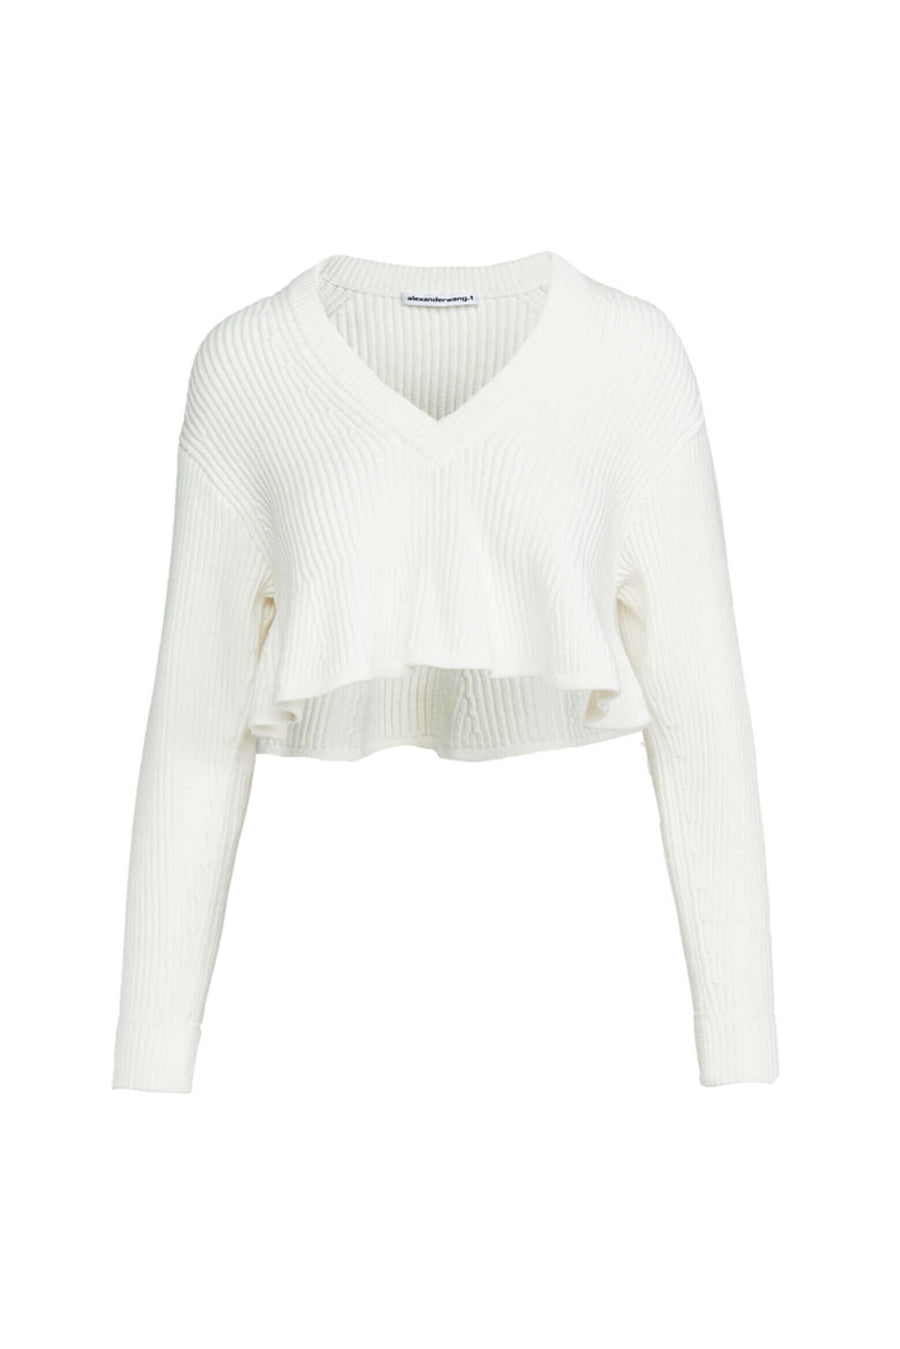 Alexander Wang Cropped V-Neck Pullover with Shortrowed Hem from The New Trend